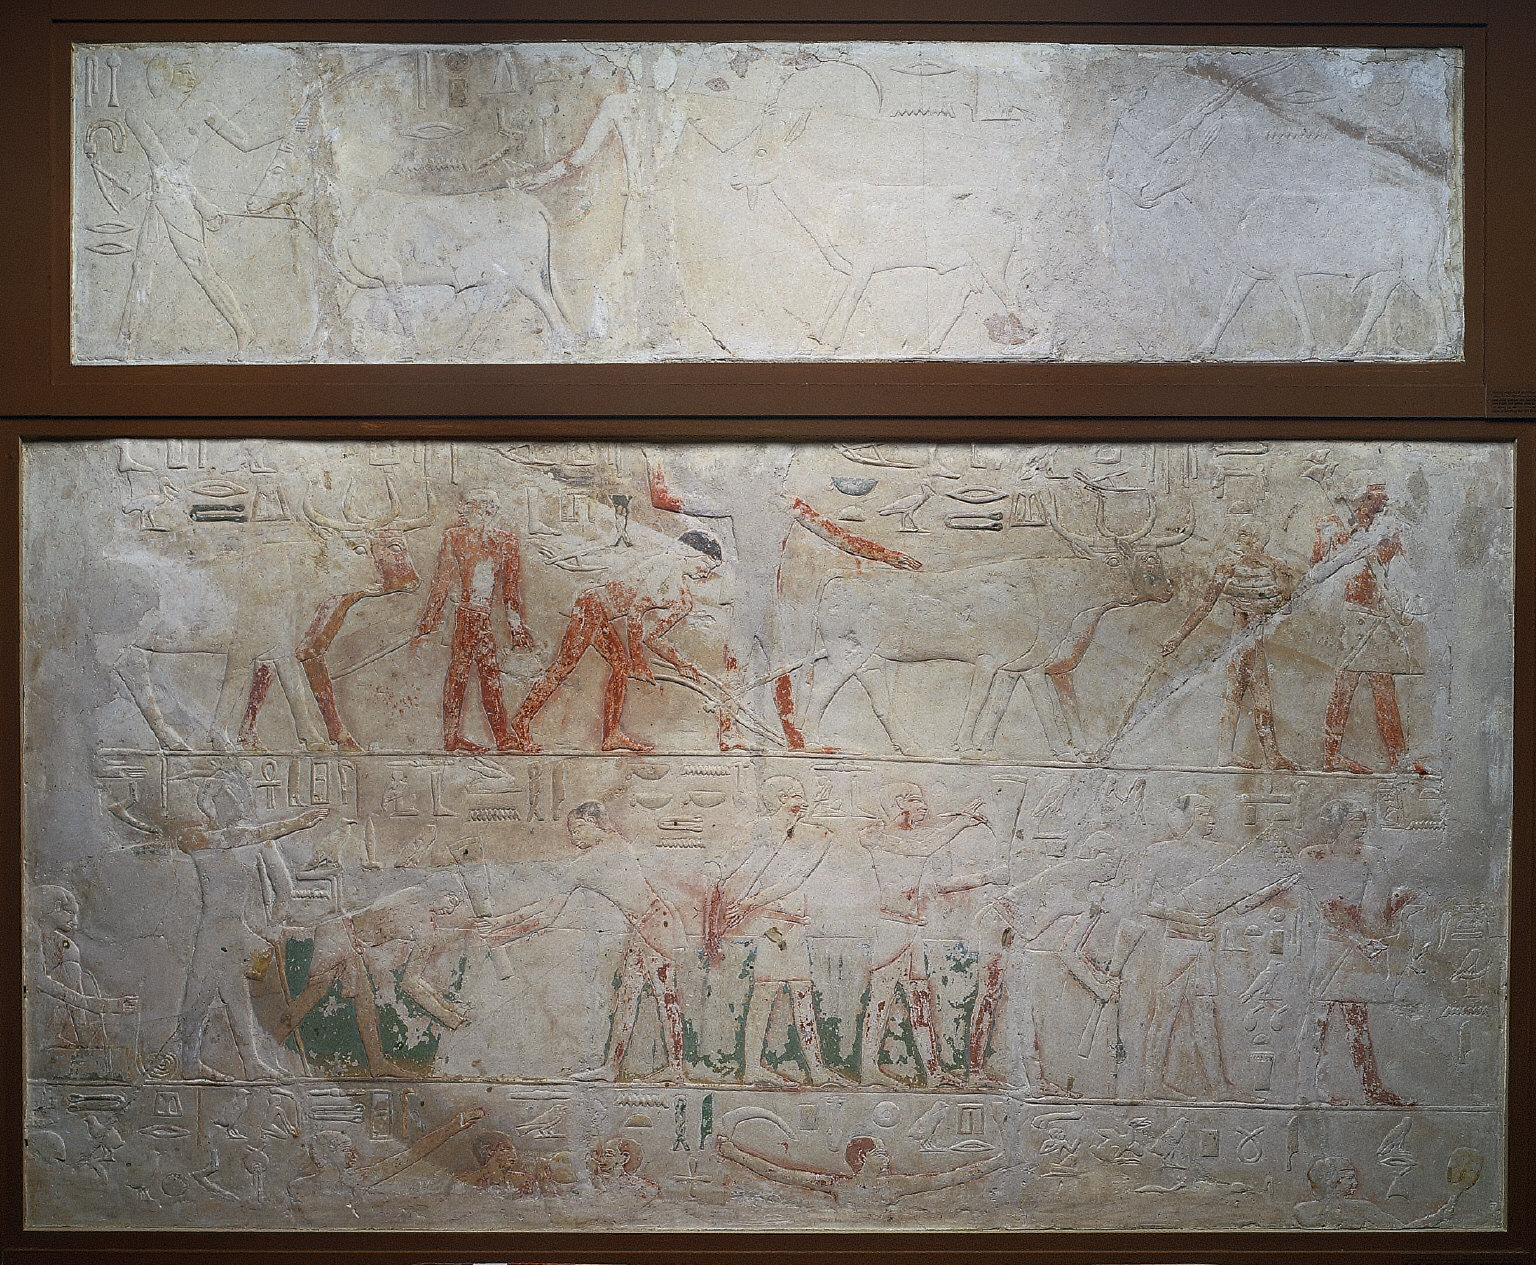 Relief of Agricultural Scenes